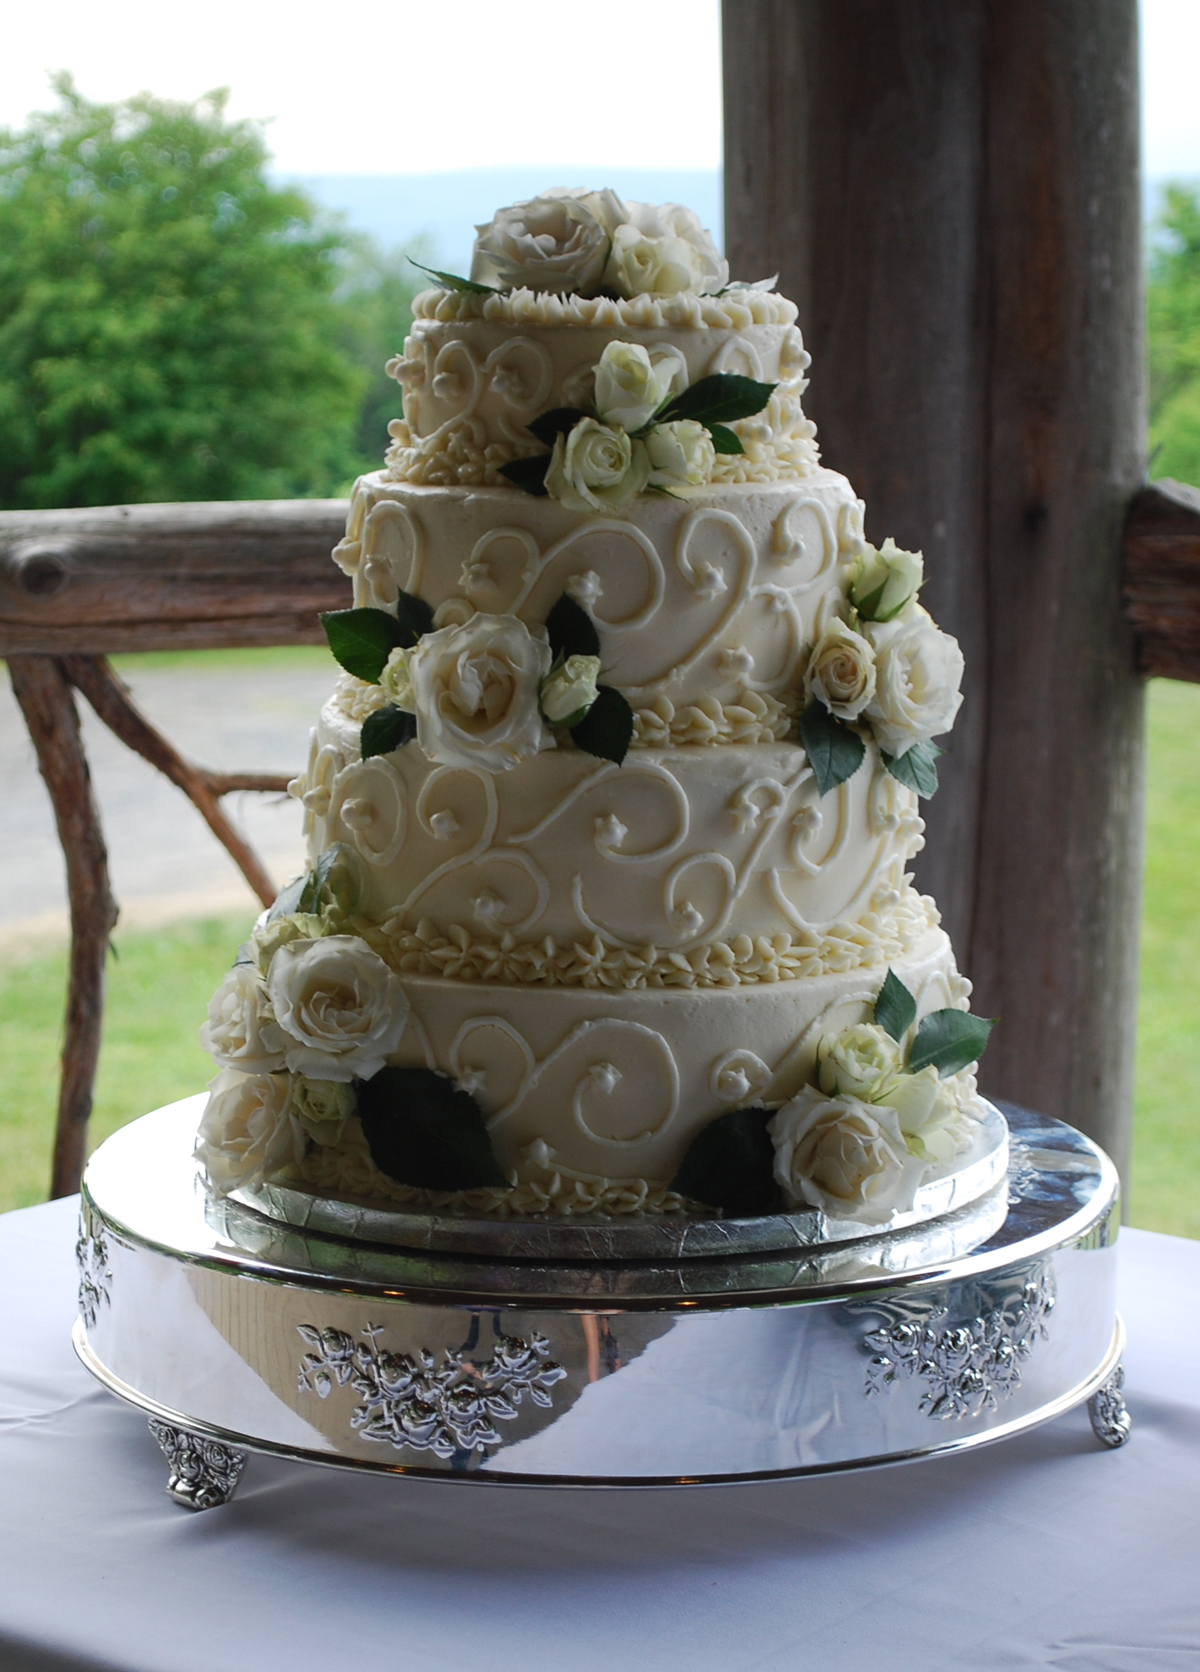 Serving Wedding Cake To Guests